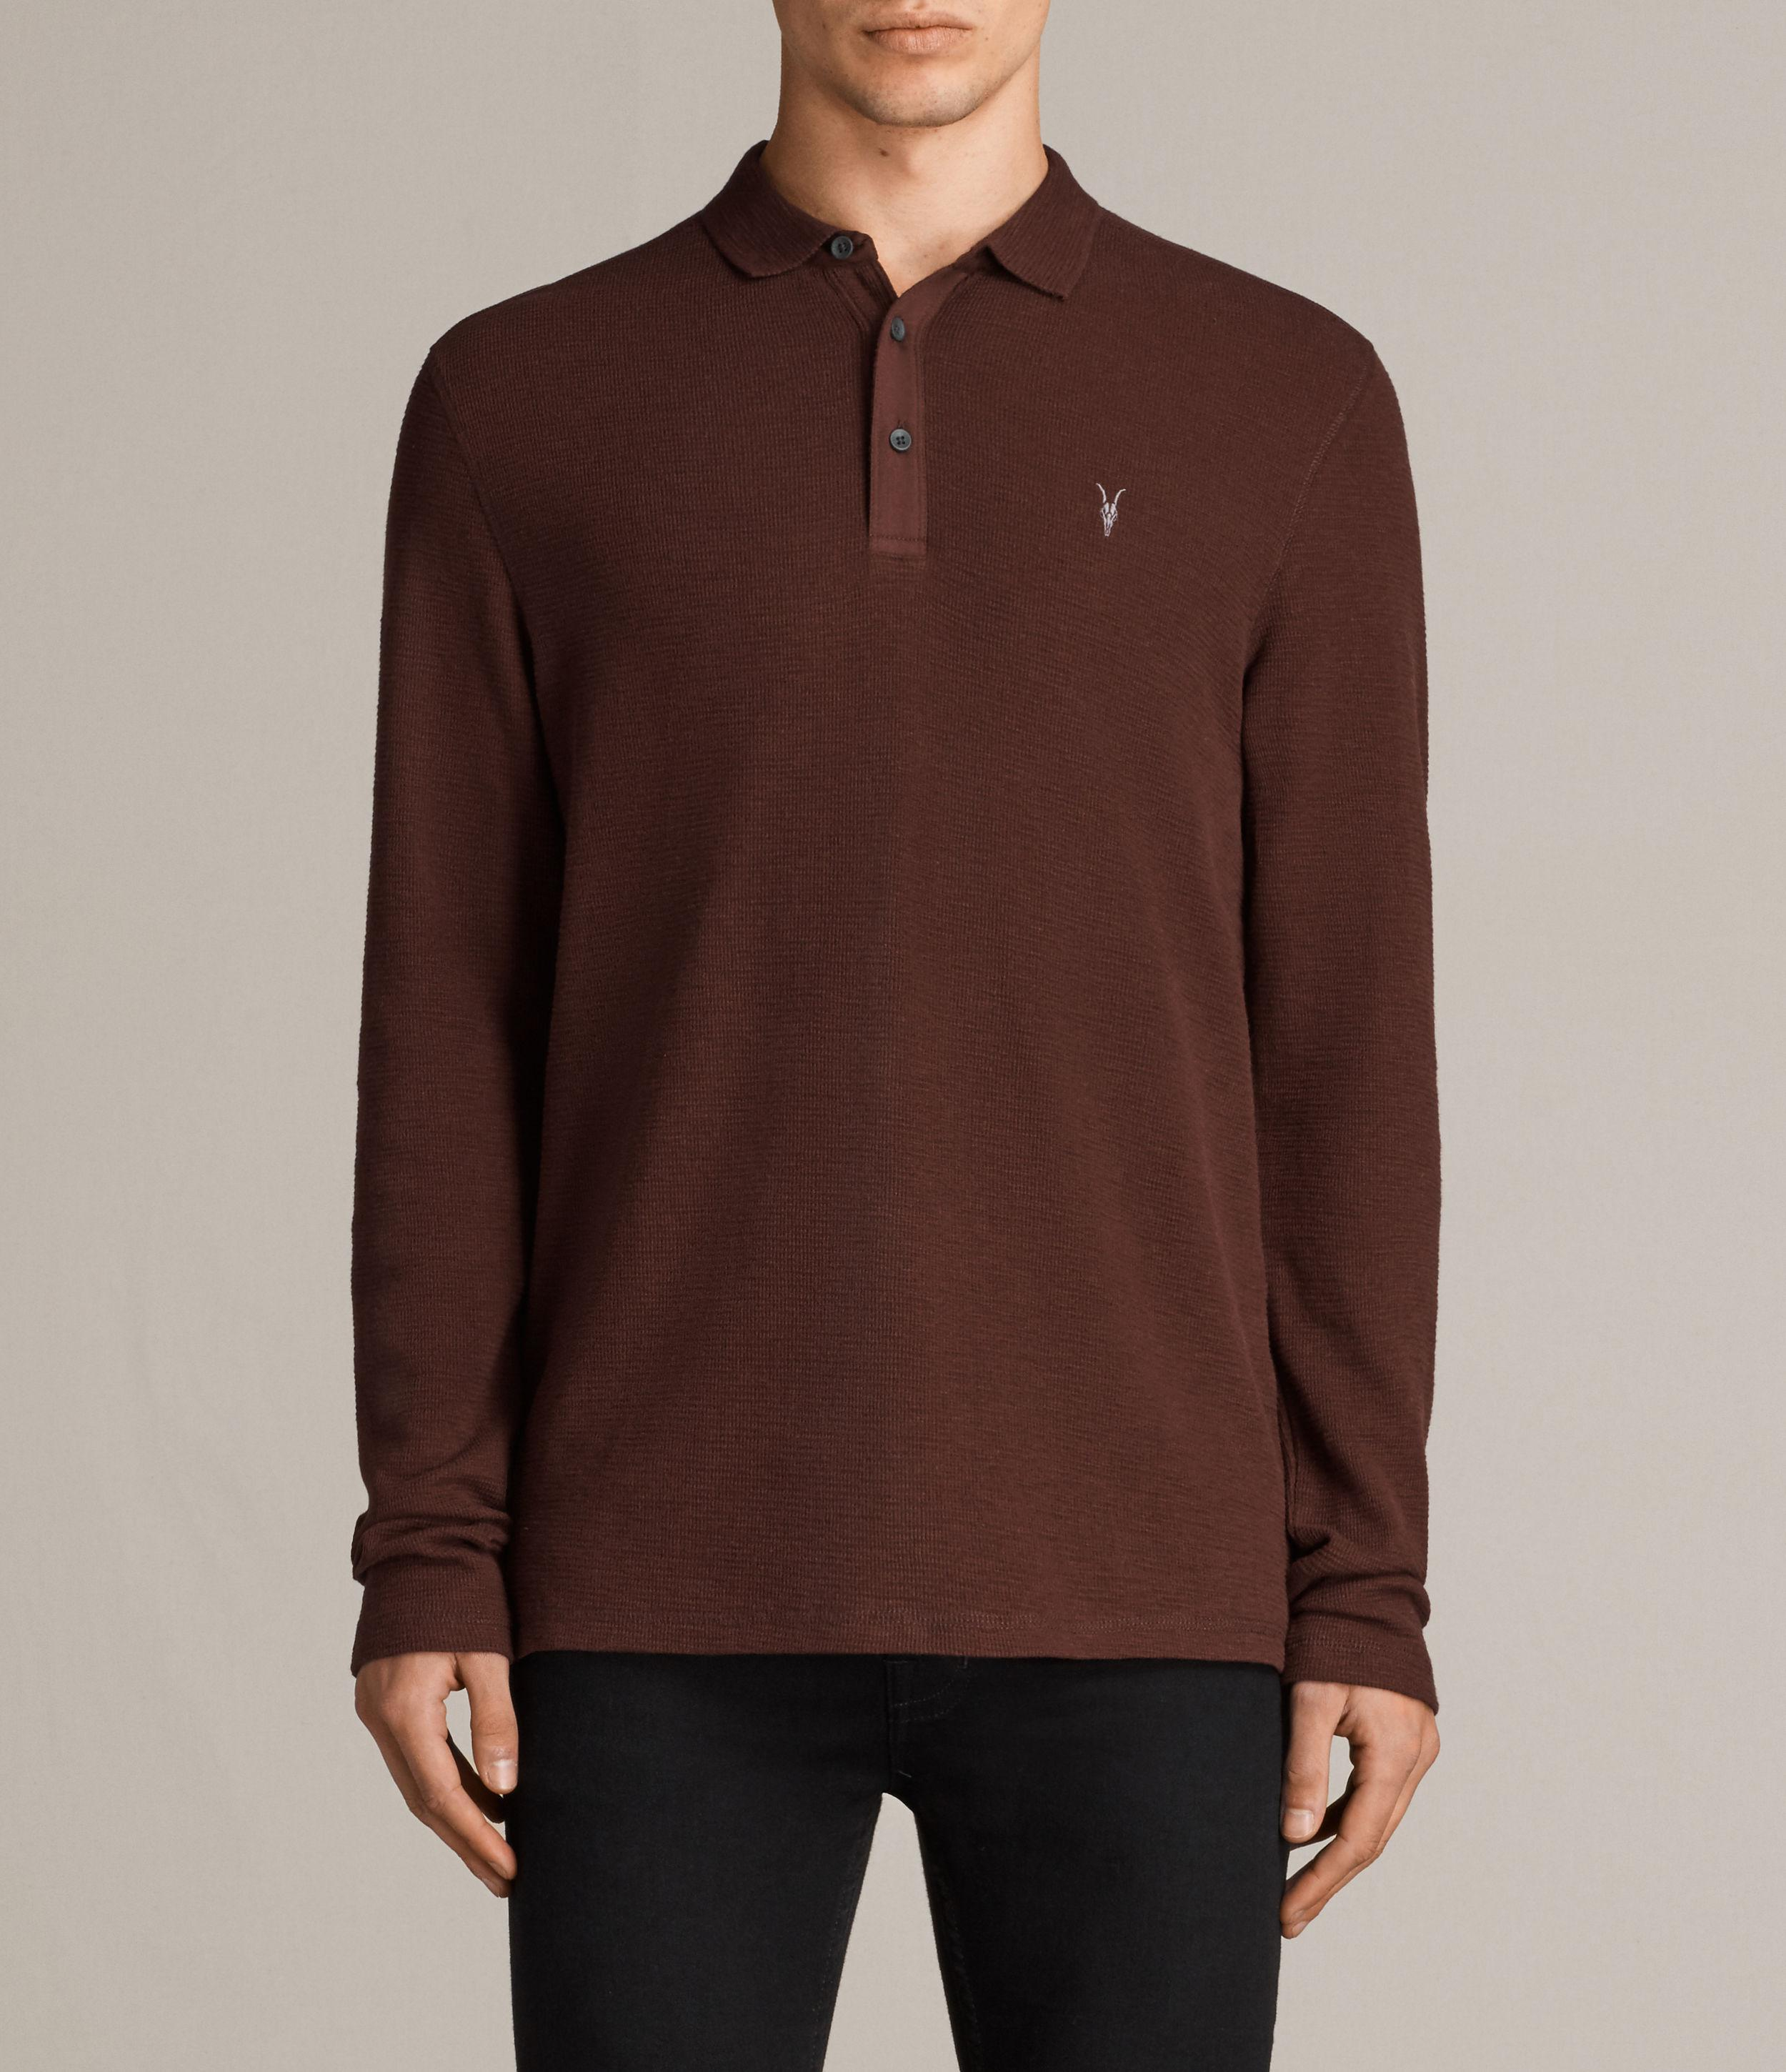 Allsaints clash long sleeve polo shirt in brown for men lyst for All saints polo shirt